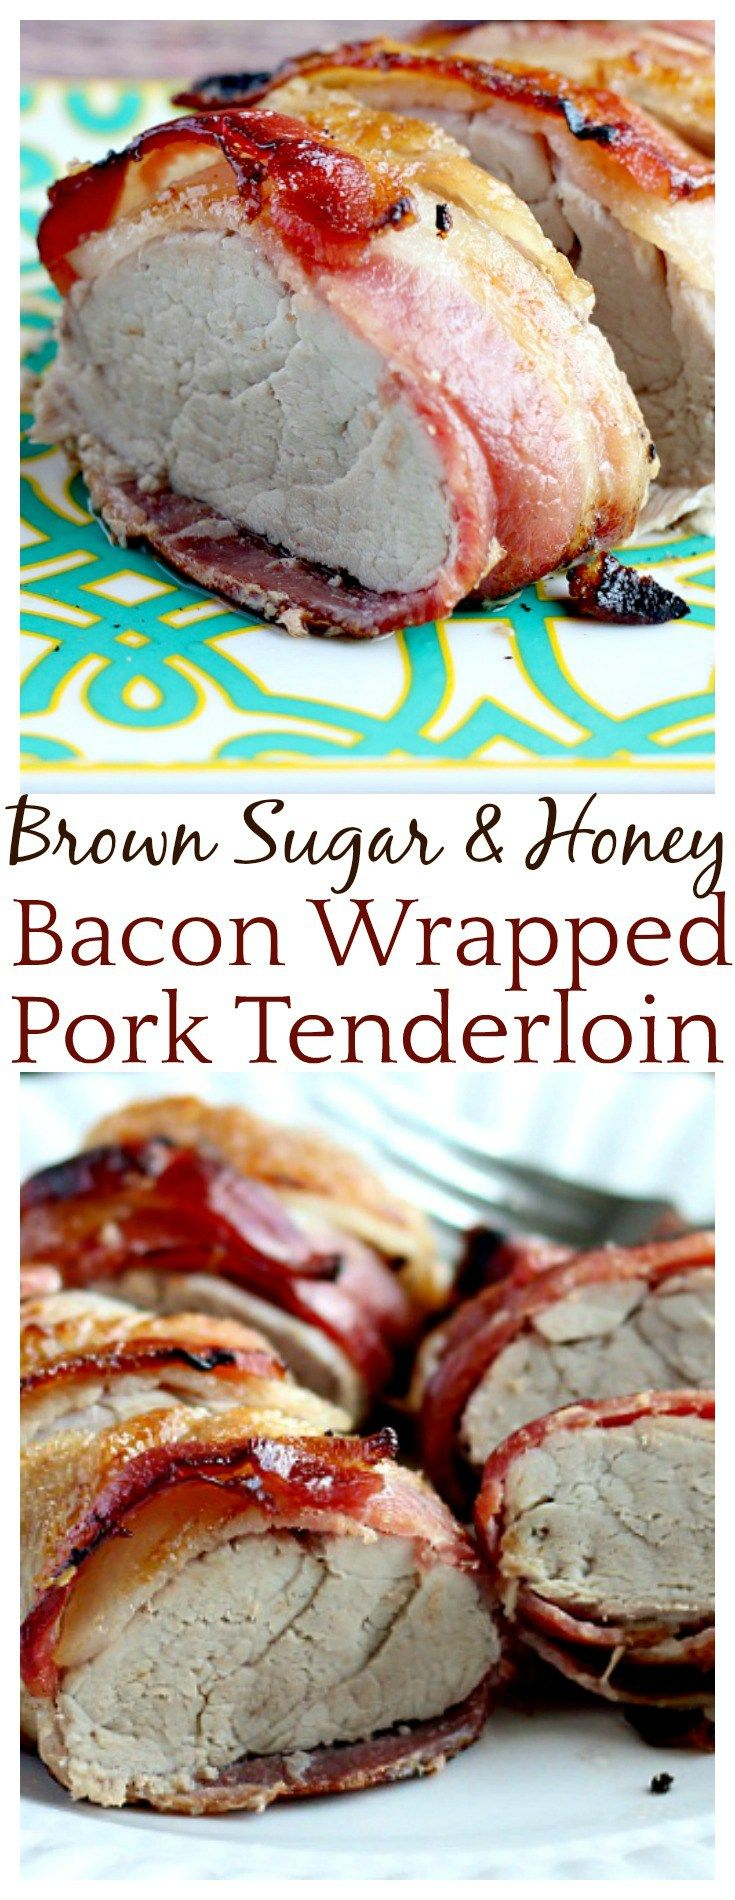 Brown Sugar and Honey Bacon Wrapped Pork Tenderloin - it really is as good as it sounds! Such an easy recipe! Just sprinkle on the sweets, wrap in smoky bacon, and you're set! I'd always heard that pork-on-pork was amazing but now I KNOW!